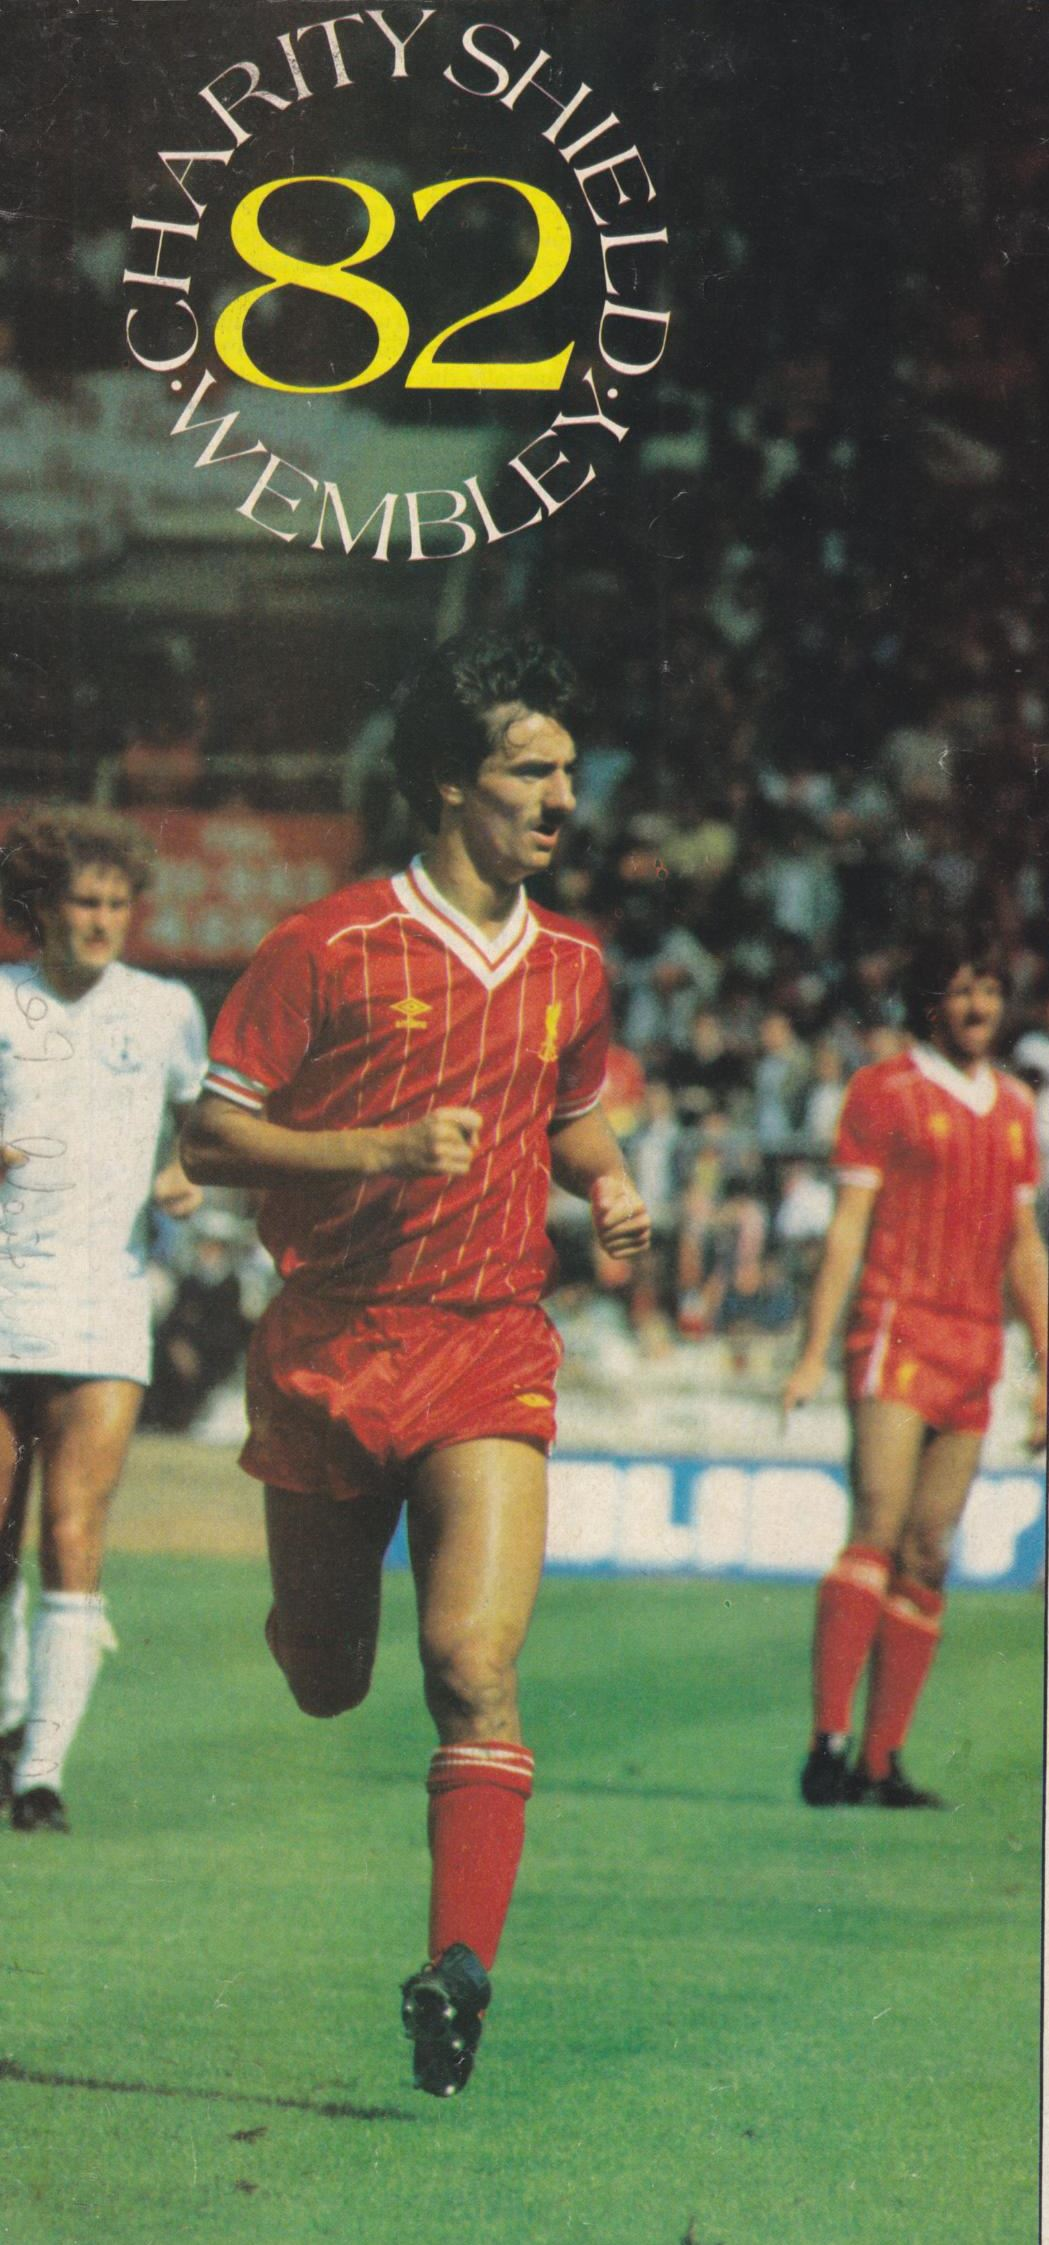 Rush in action in Charity shield 1982